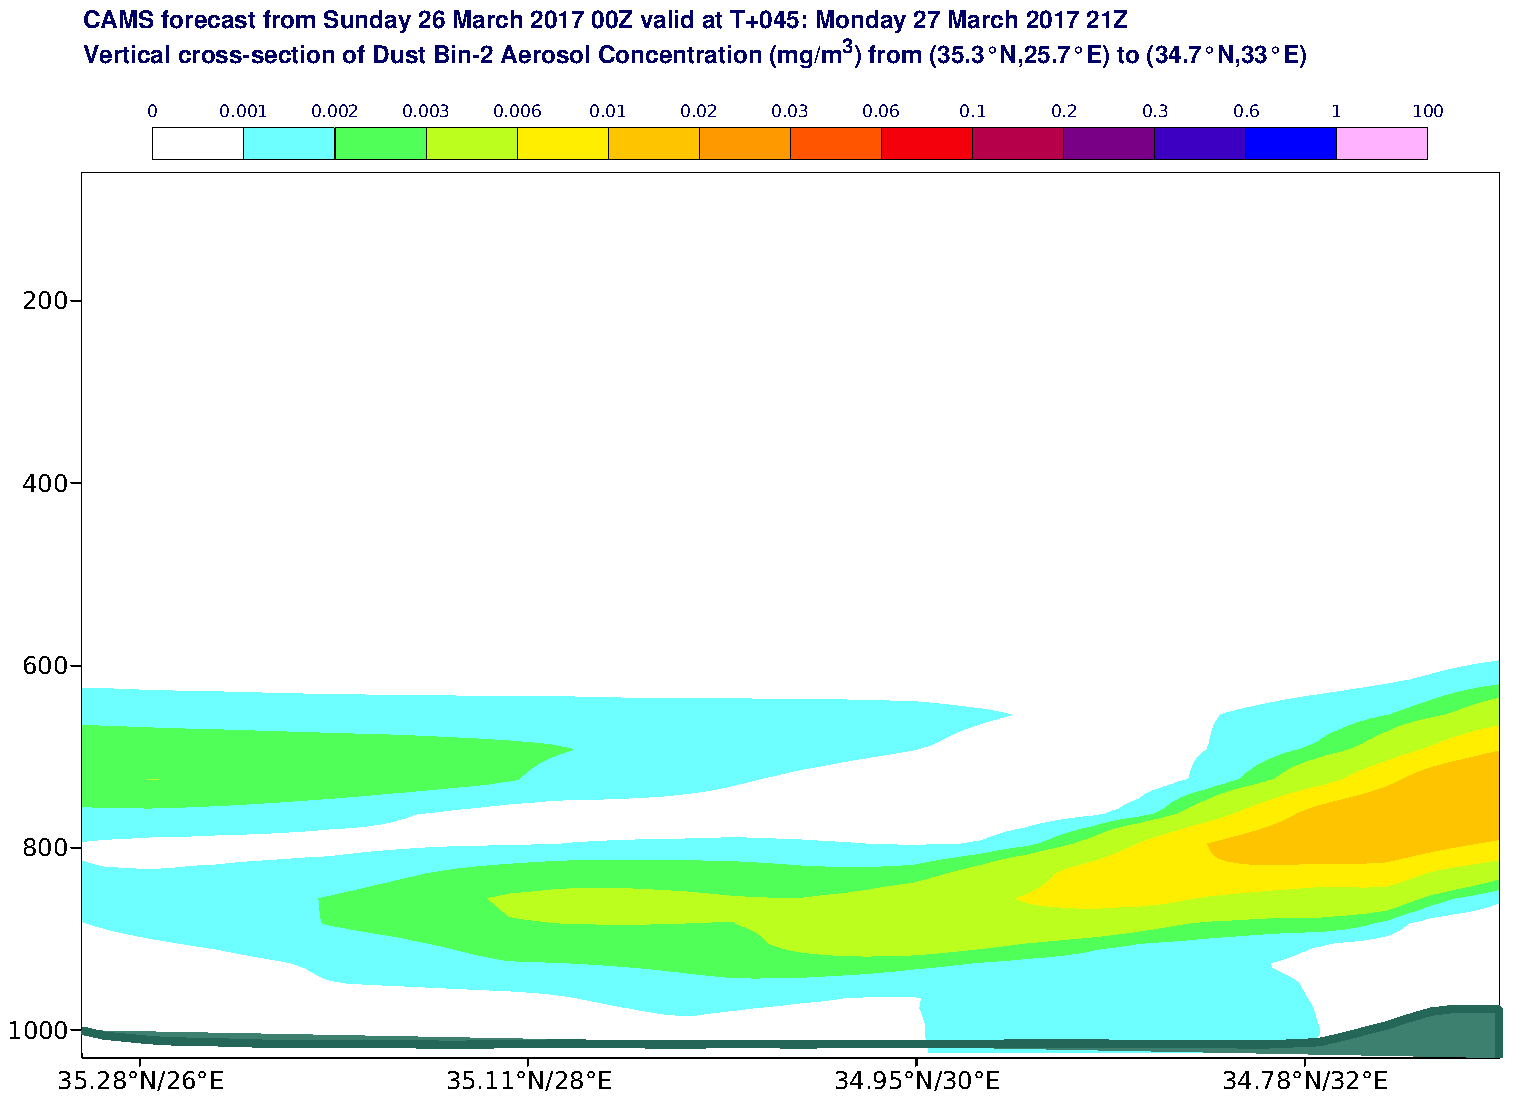 Vertical cross-section of Dust Bin-2 Aerosol Concentration (mg/m3) valid at T45 - 2017-03-27 21:00